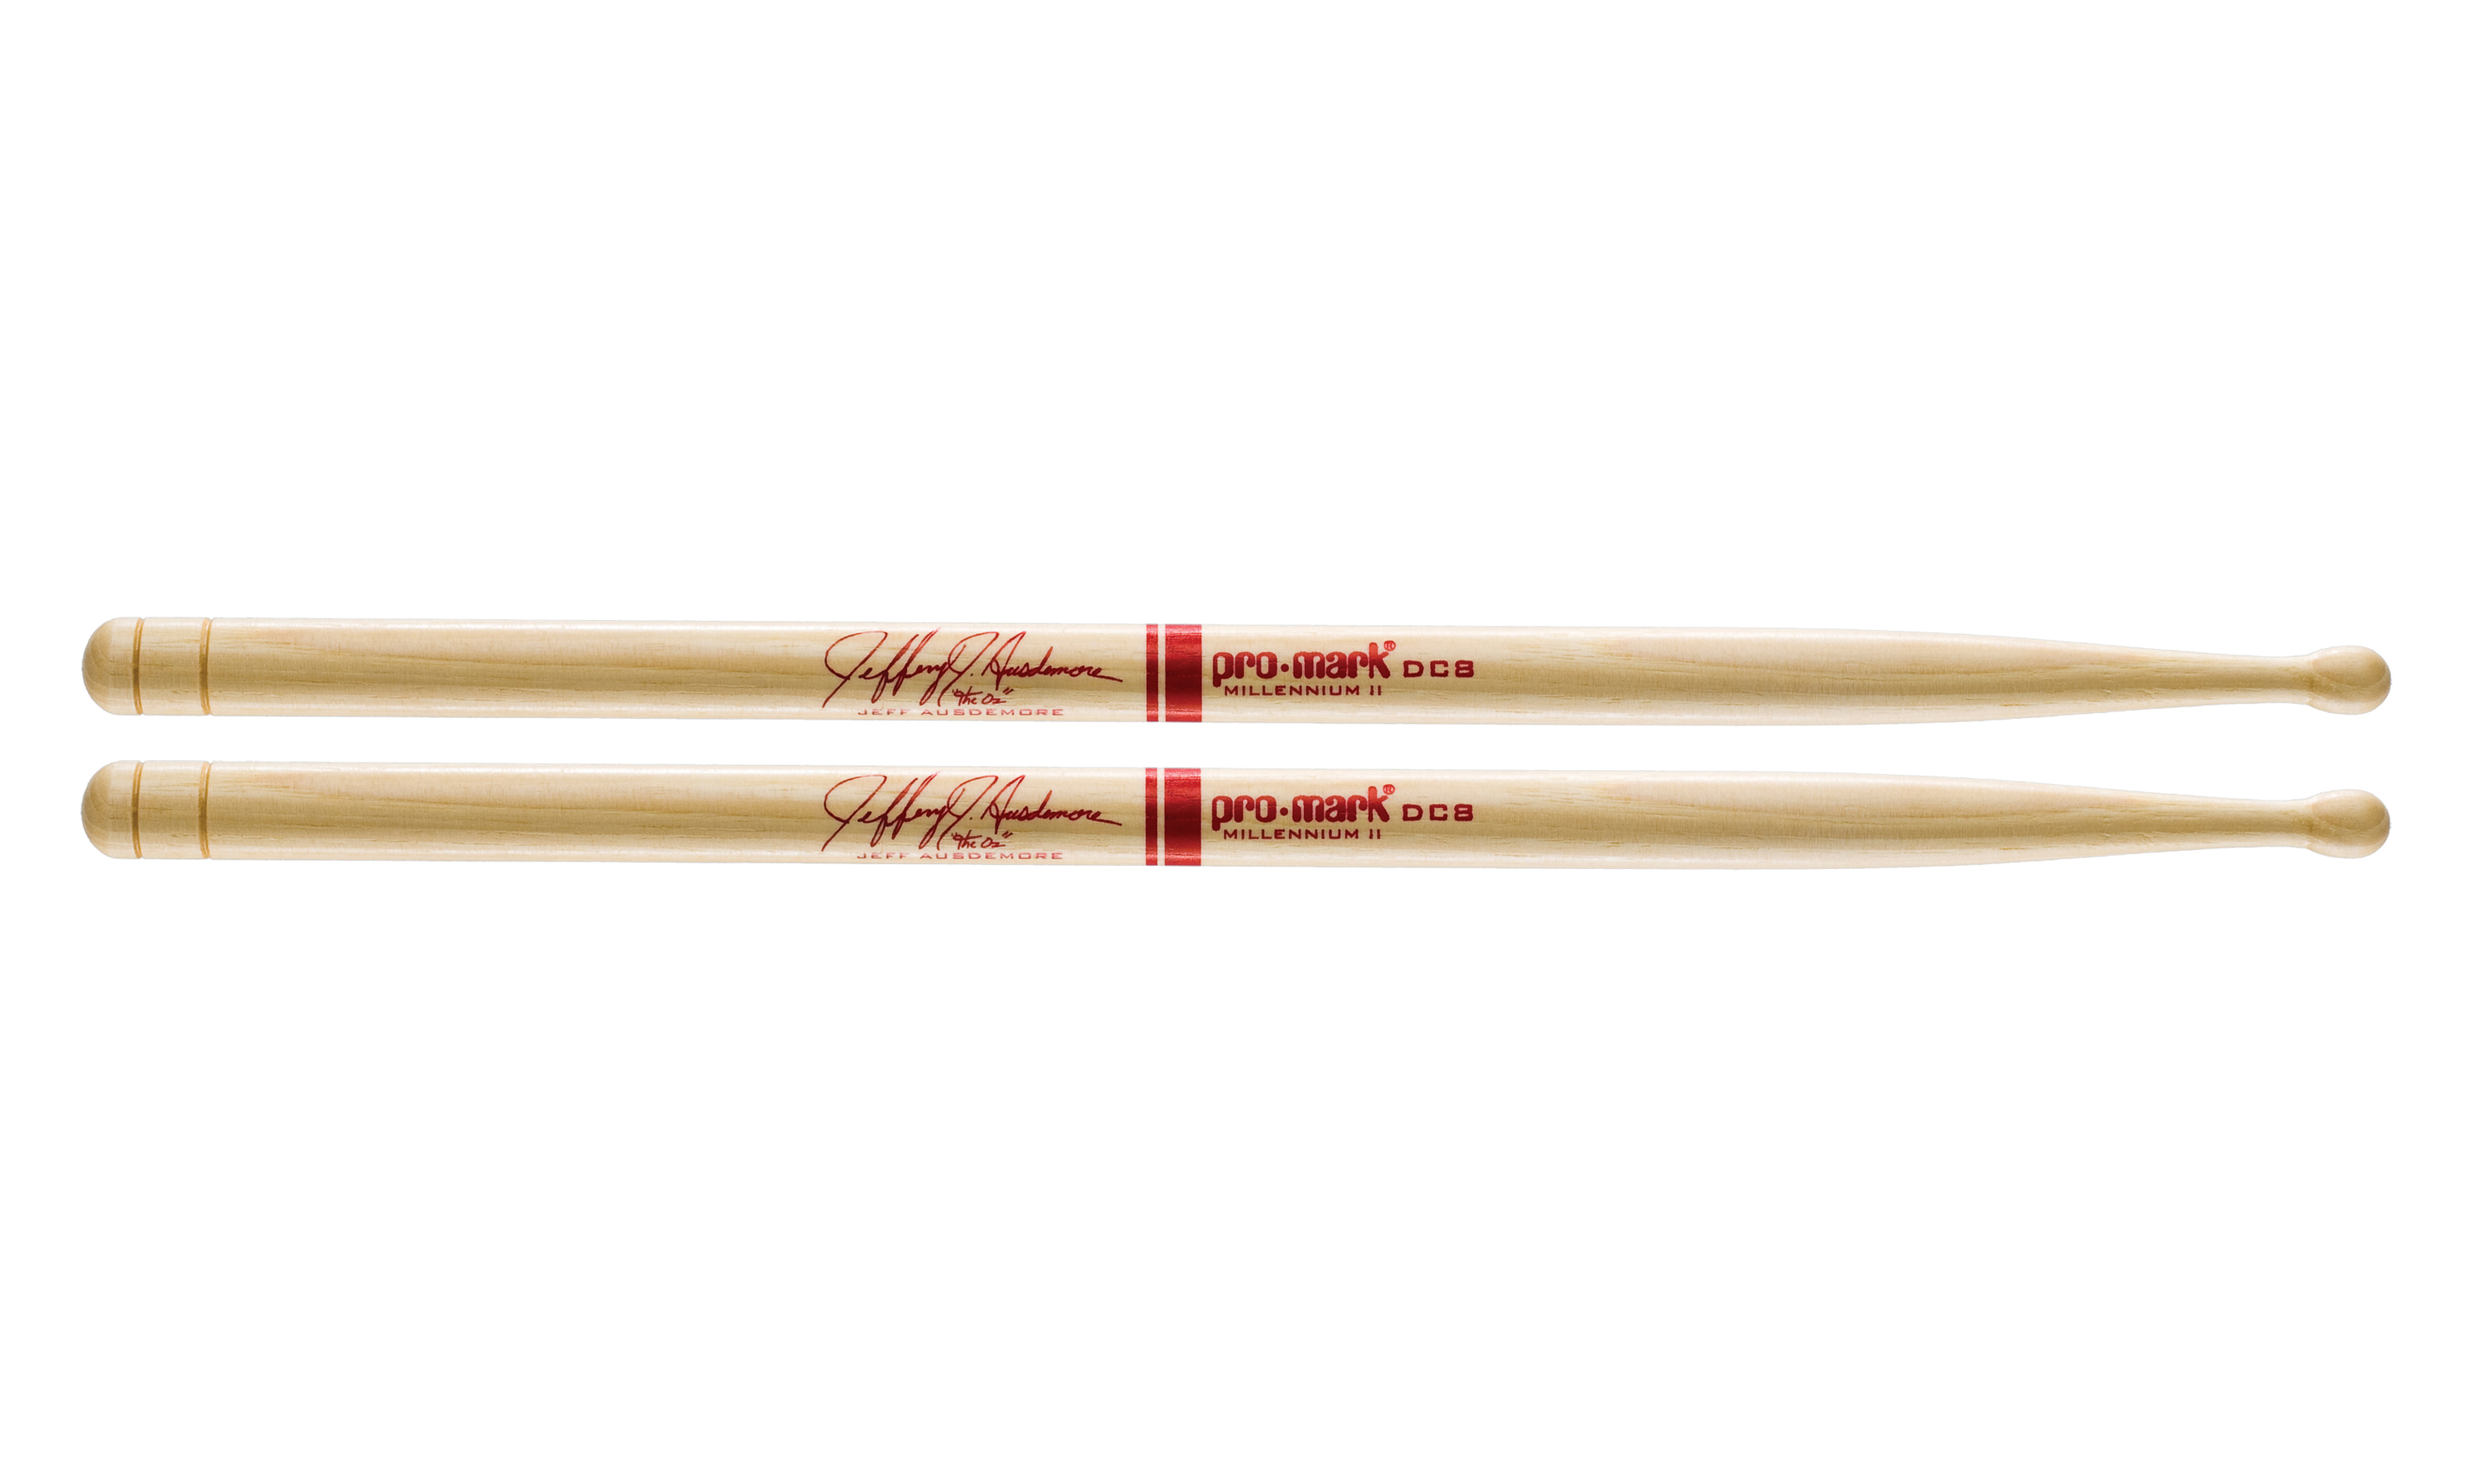 ProMark Hickory DC8 Jeff Ausdemore Wood Tip Drumstick